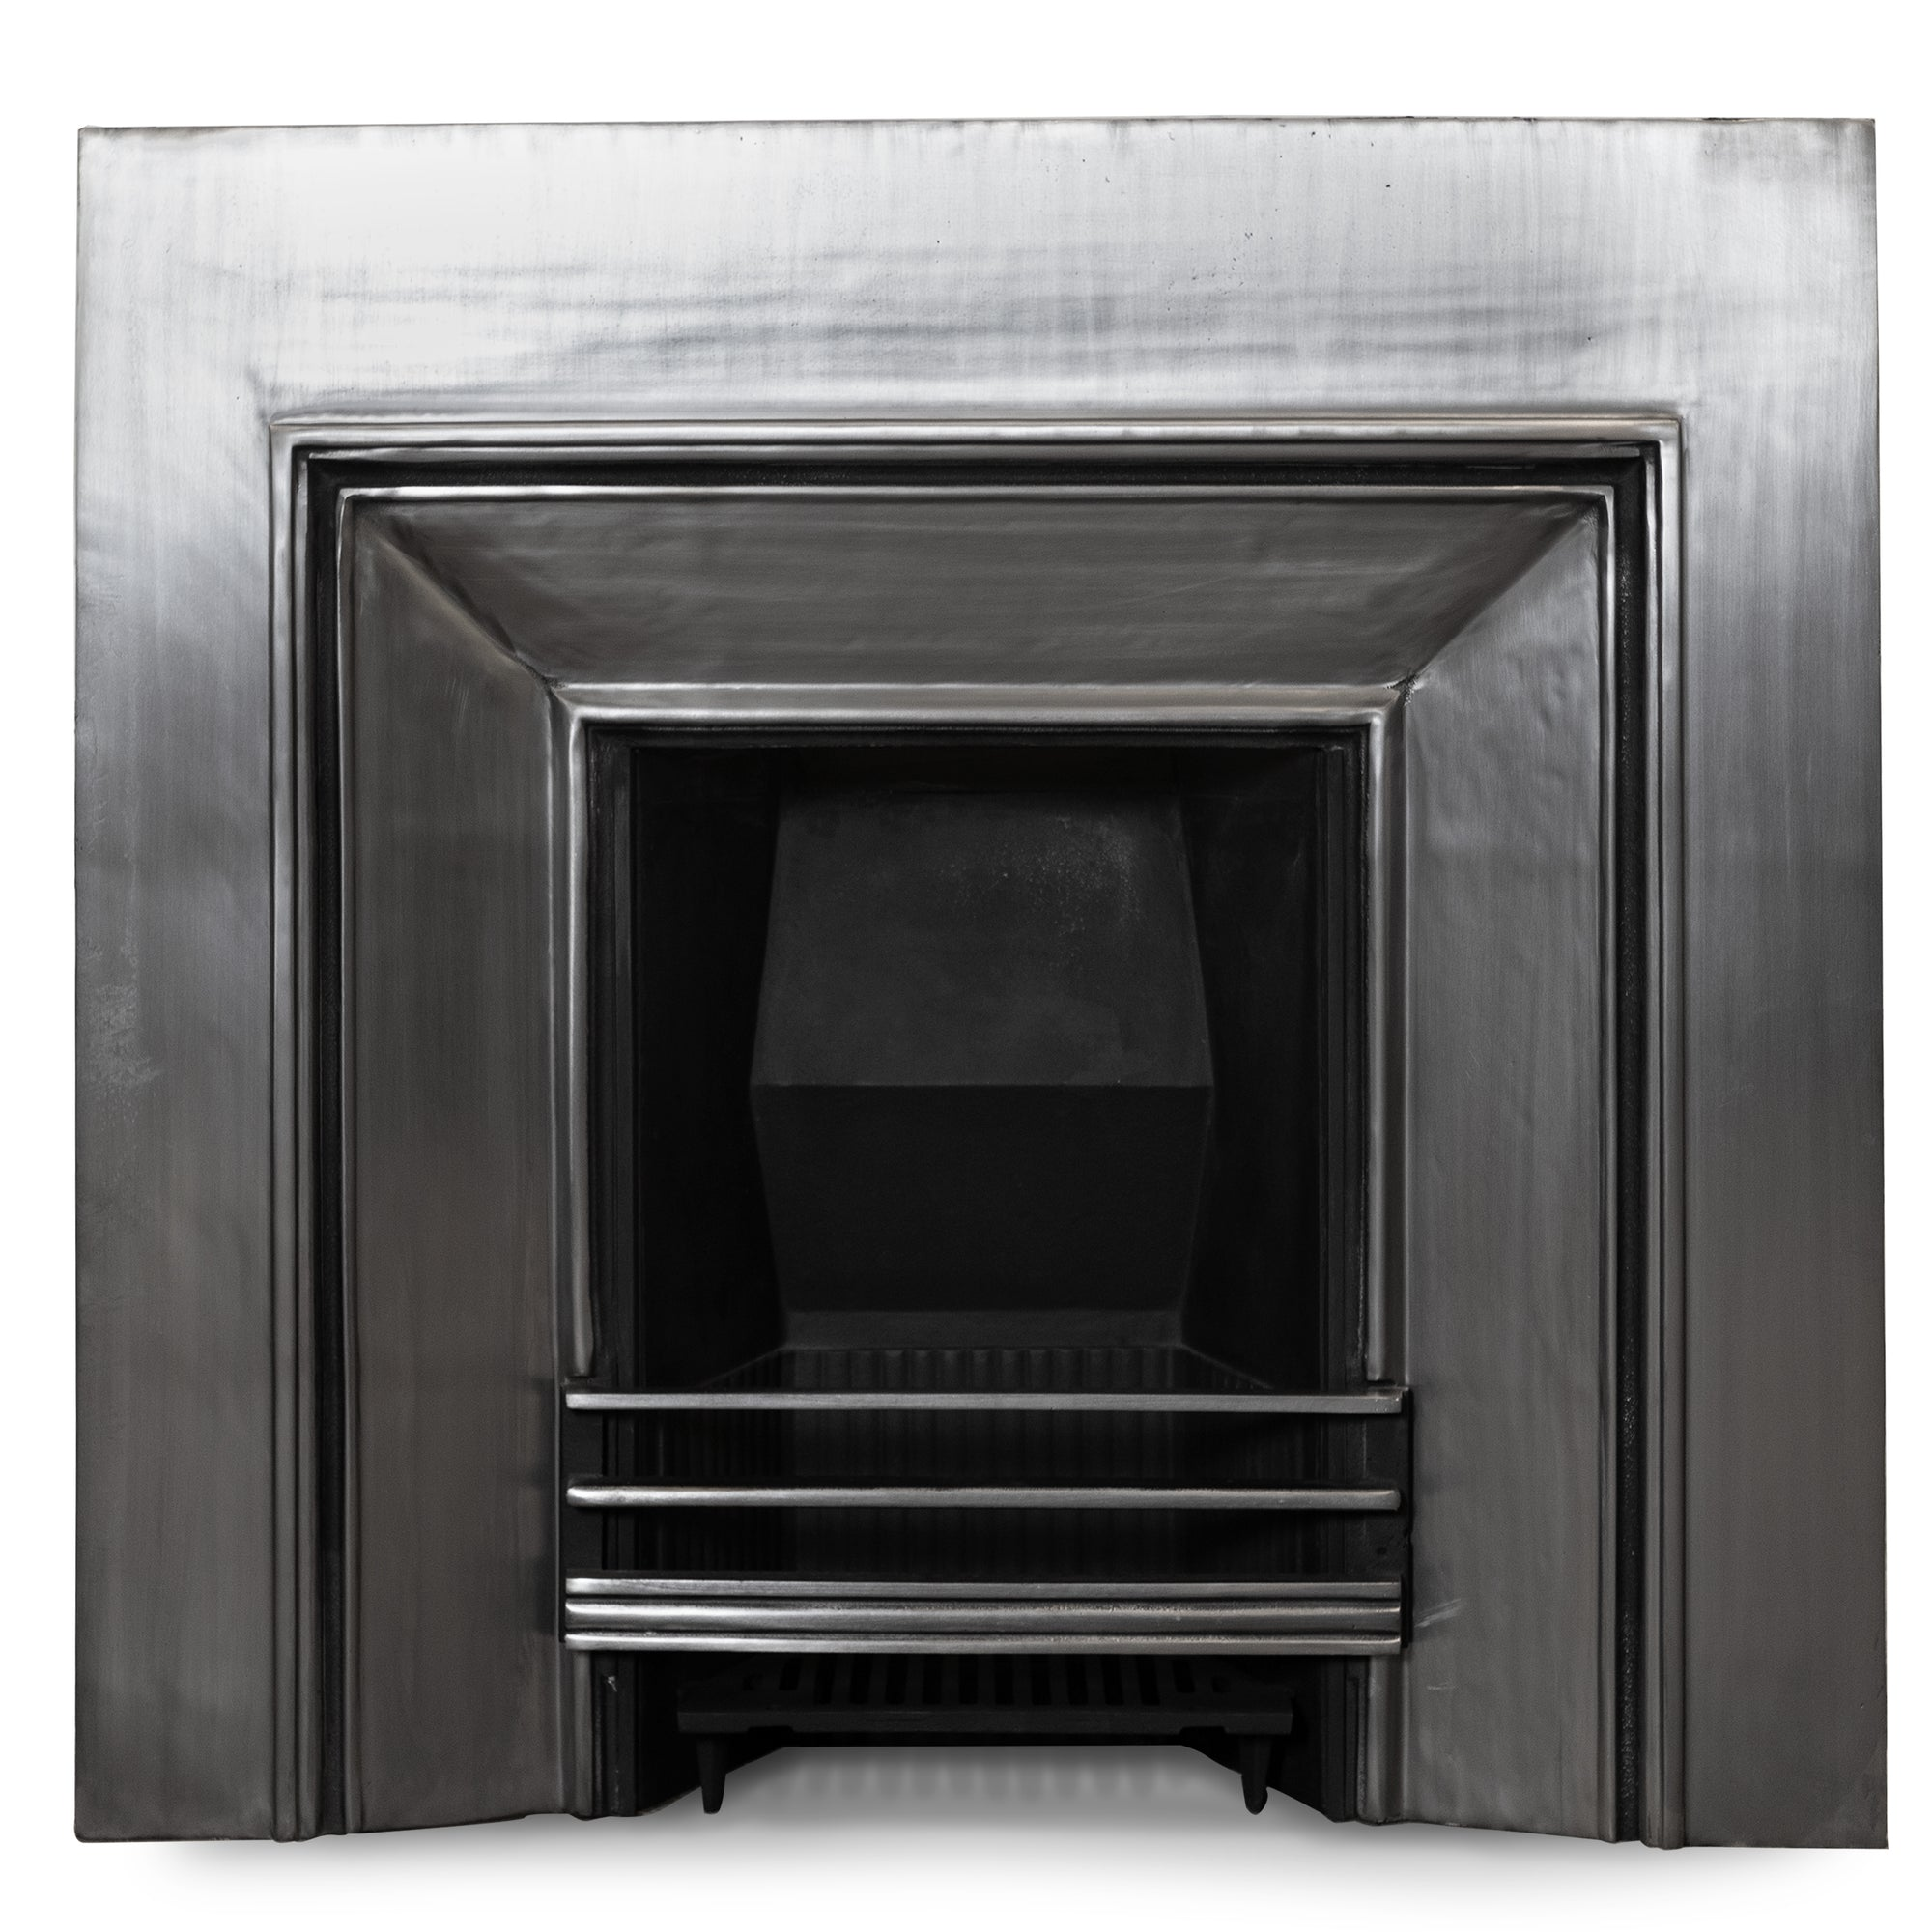 Reclaimed Polished Cast Iron Register Grate Fireplace Insert | The Architectural Forum